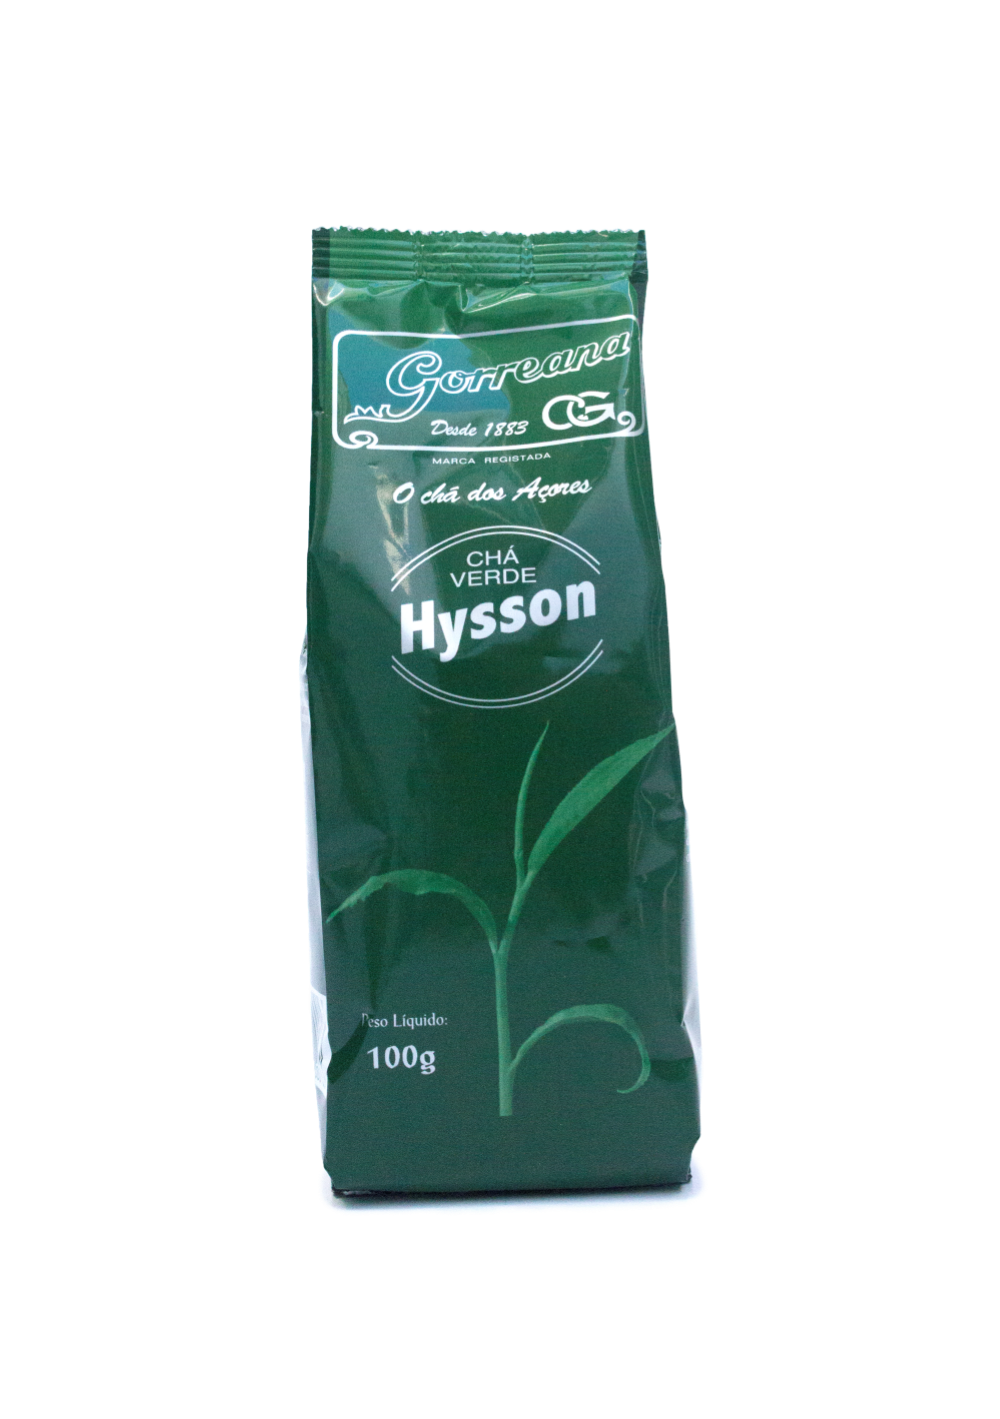 Hysson Green Tea (loose leaf)